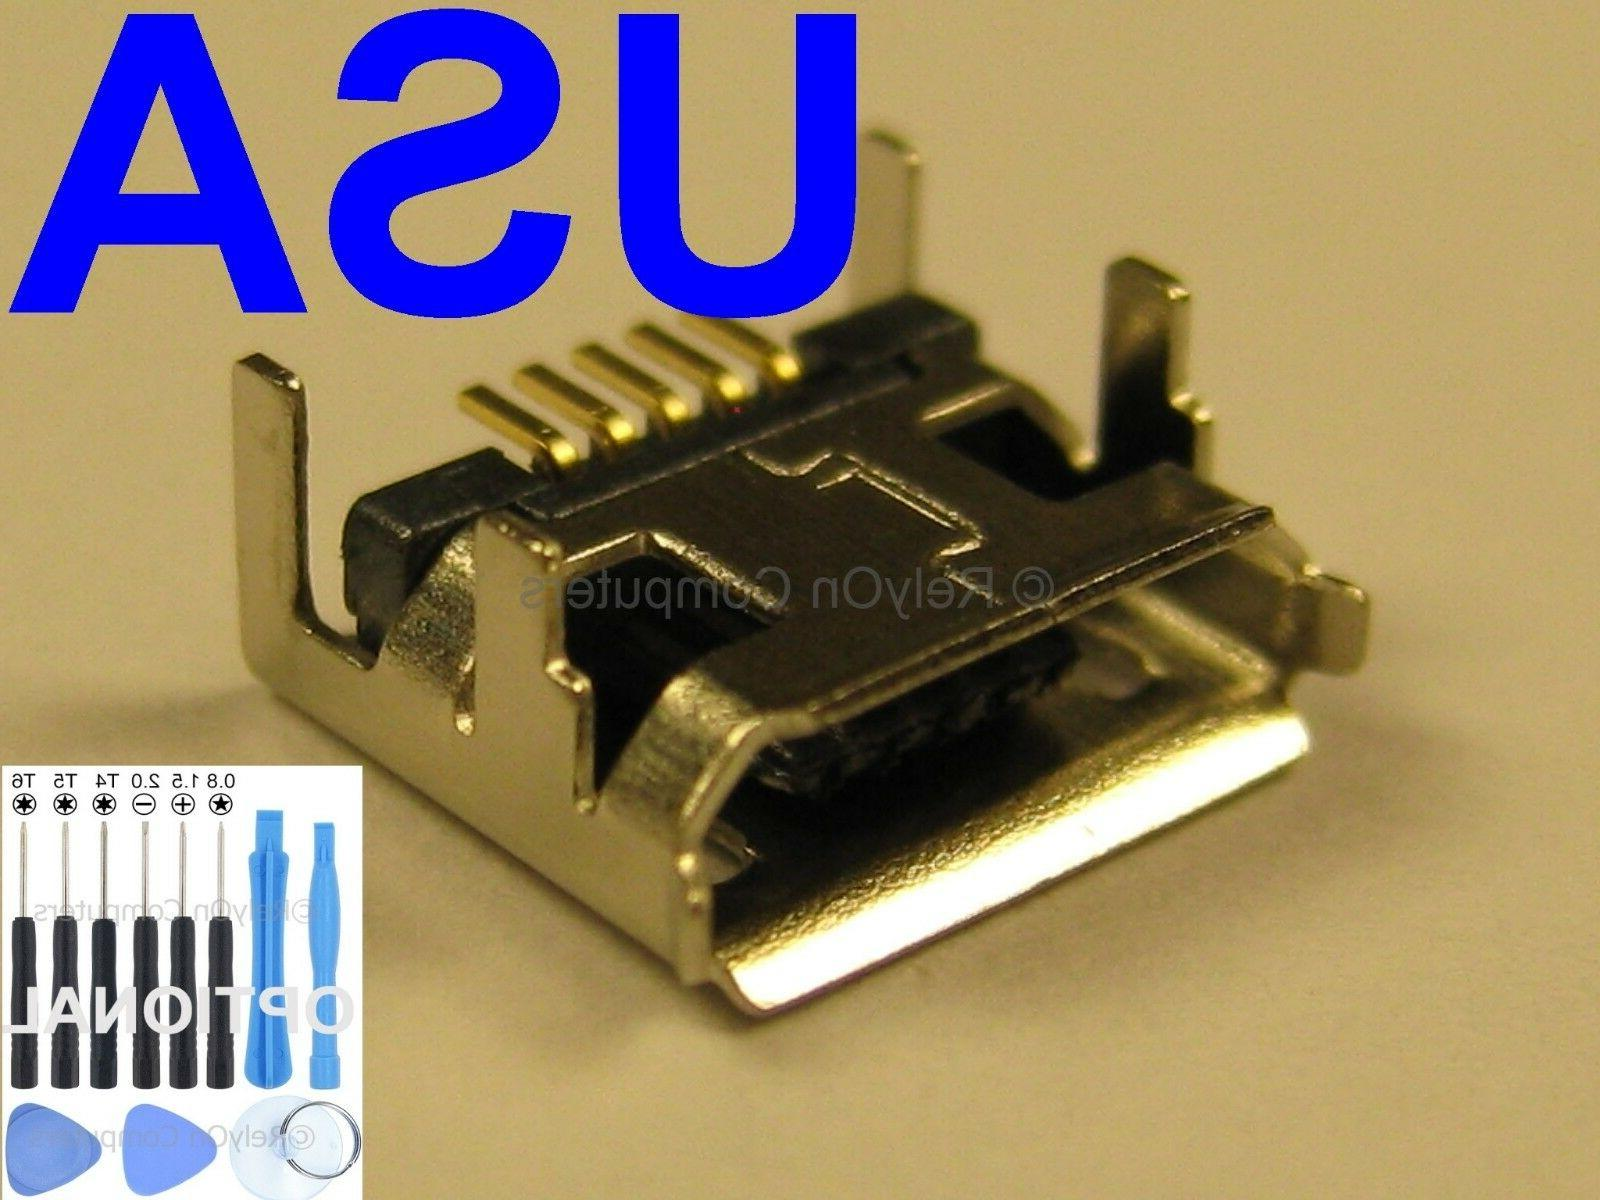 Micro USB Charging Port Charger Connector for JBL Flip 3 Blu